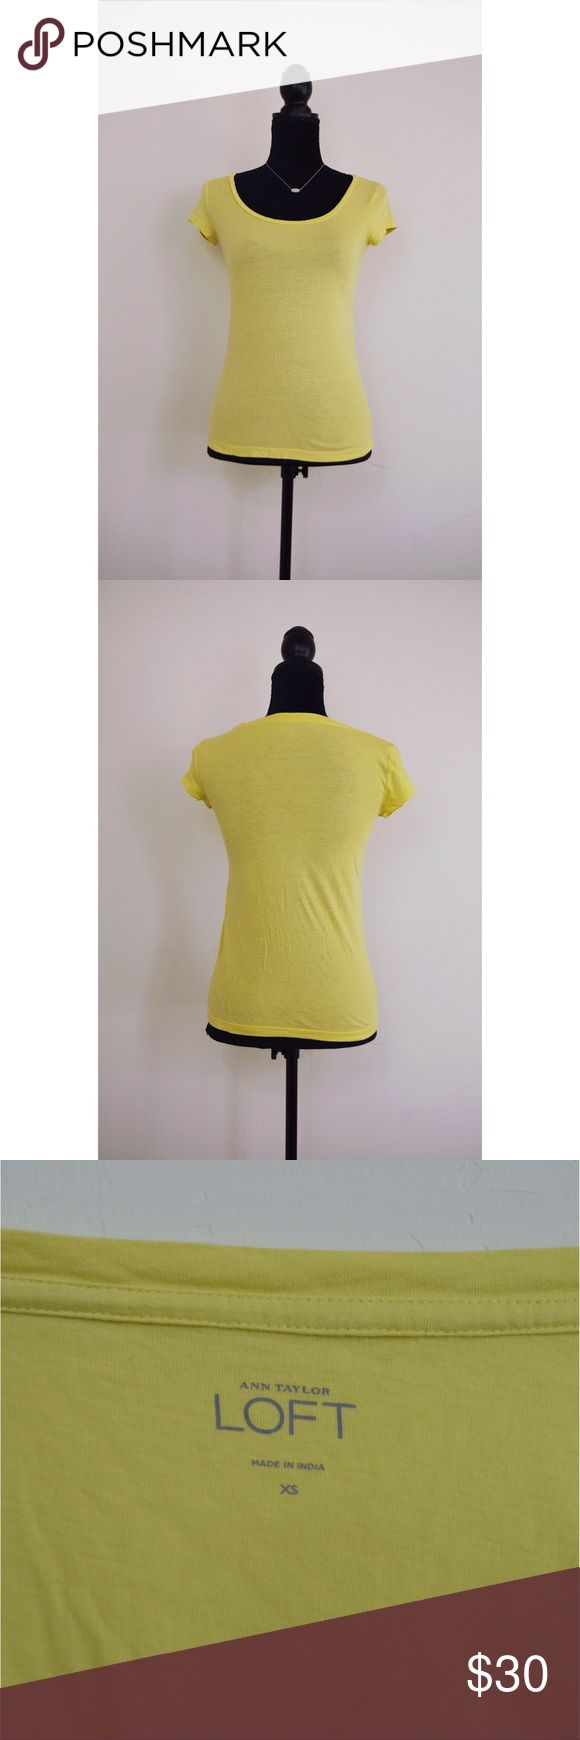 Anne Taylor LOFT Scoop Neck Tee This lightweight Ann Taylor LOFT yellow tee is the perfect addition to any summer wardrobe! Scoop neck, 60% cotton, 40% modal. Measurements available upon request. LOFT Tops Tees - Short Sleeve